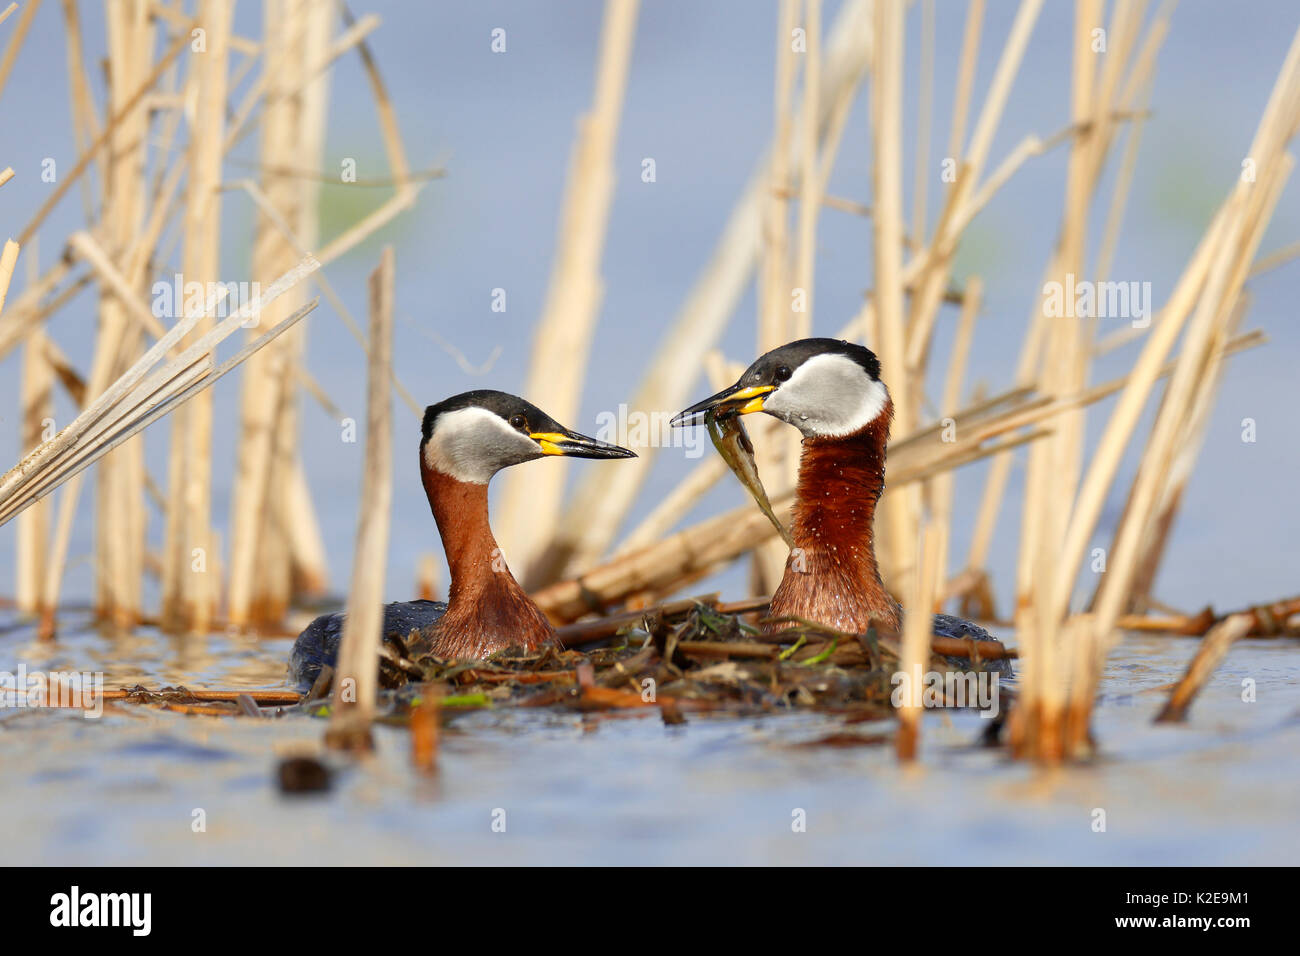 Red-necked grebes (Podiceps grisegena), couple with nesting material, nature river area Peene Valley - Stock Image